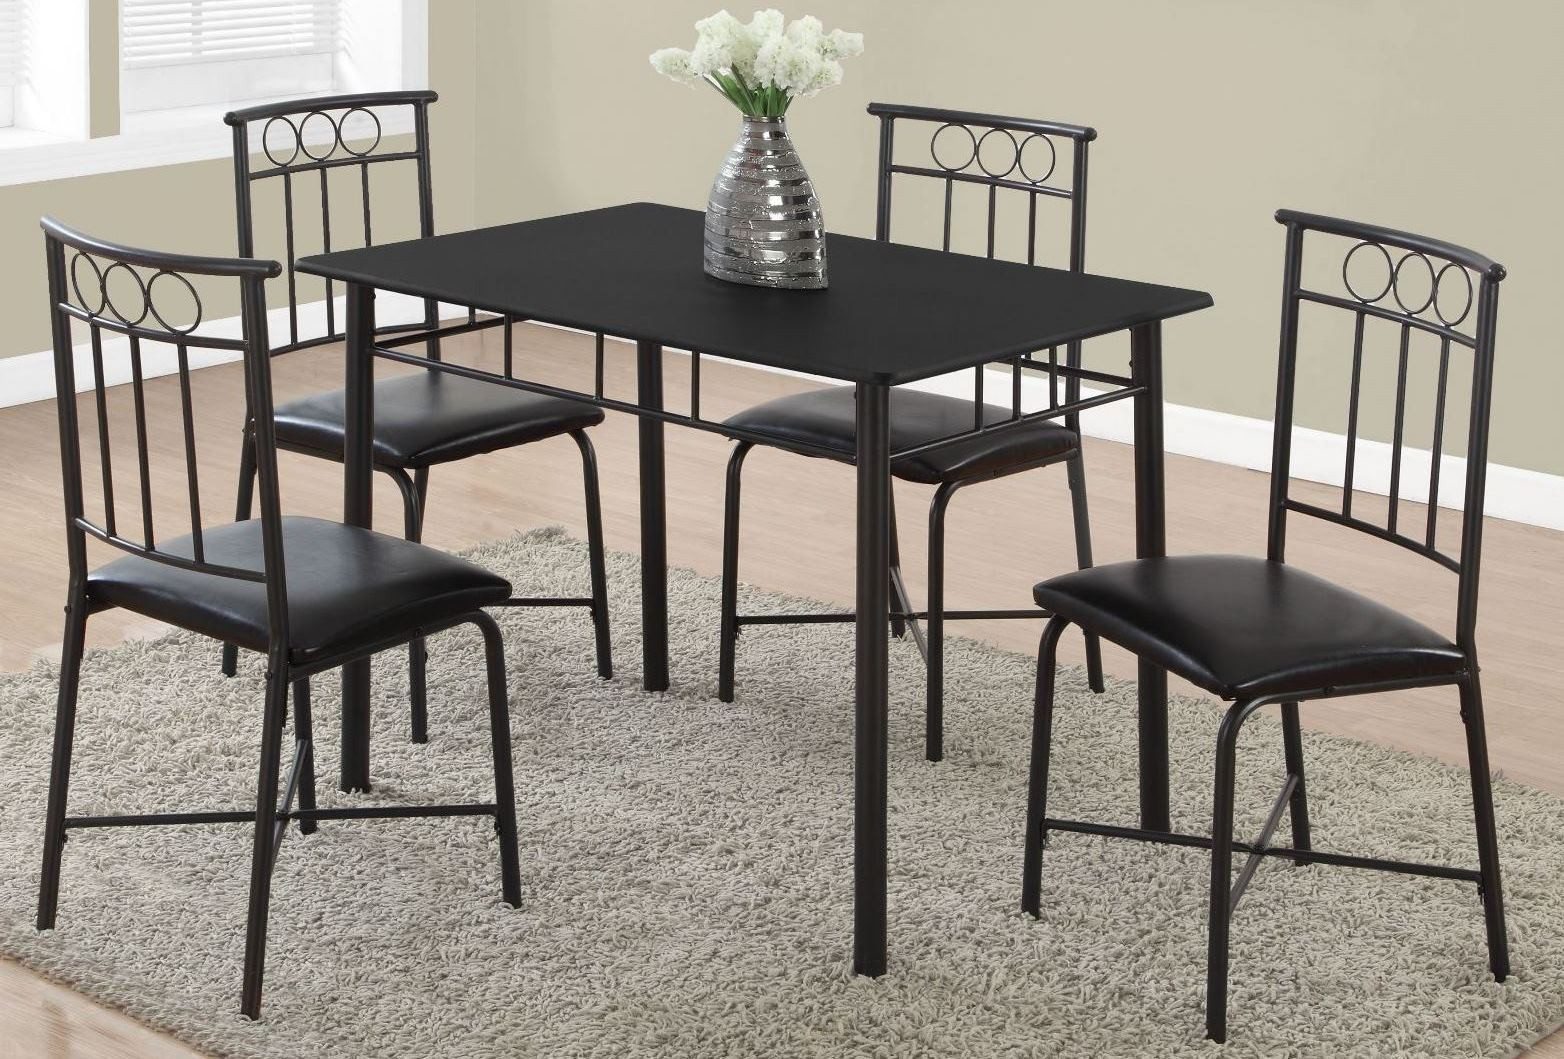 Black metal 5 piece dining room set 1018 monarch for Black dining room set